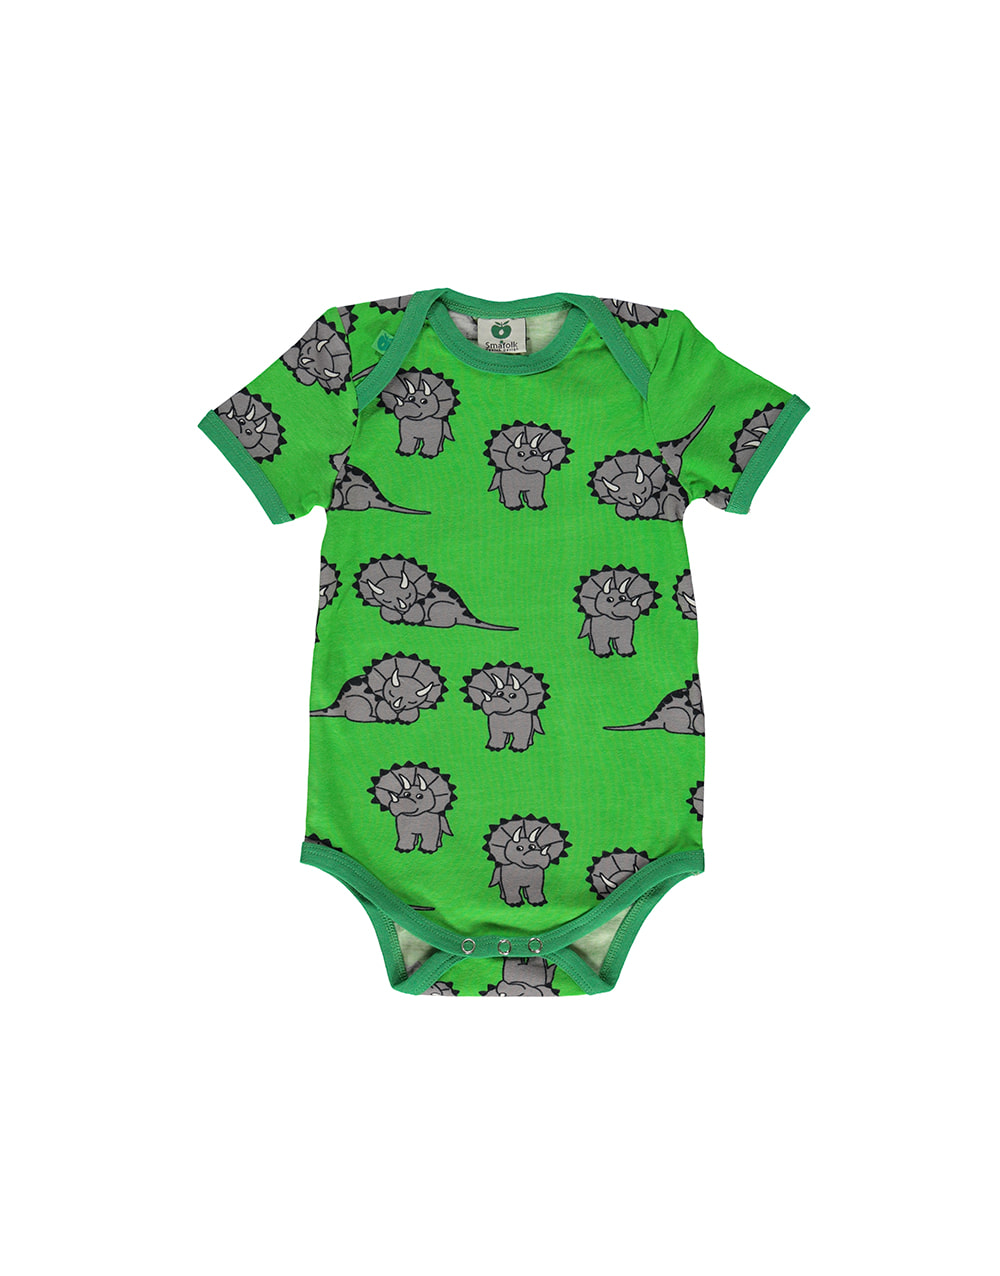 SMAFOLK  Summer Body  Dinosaur  Green